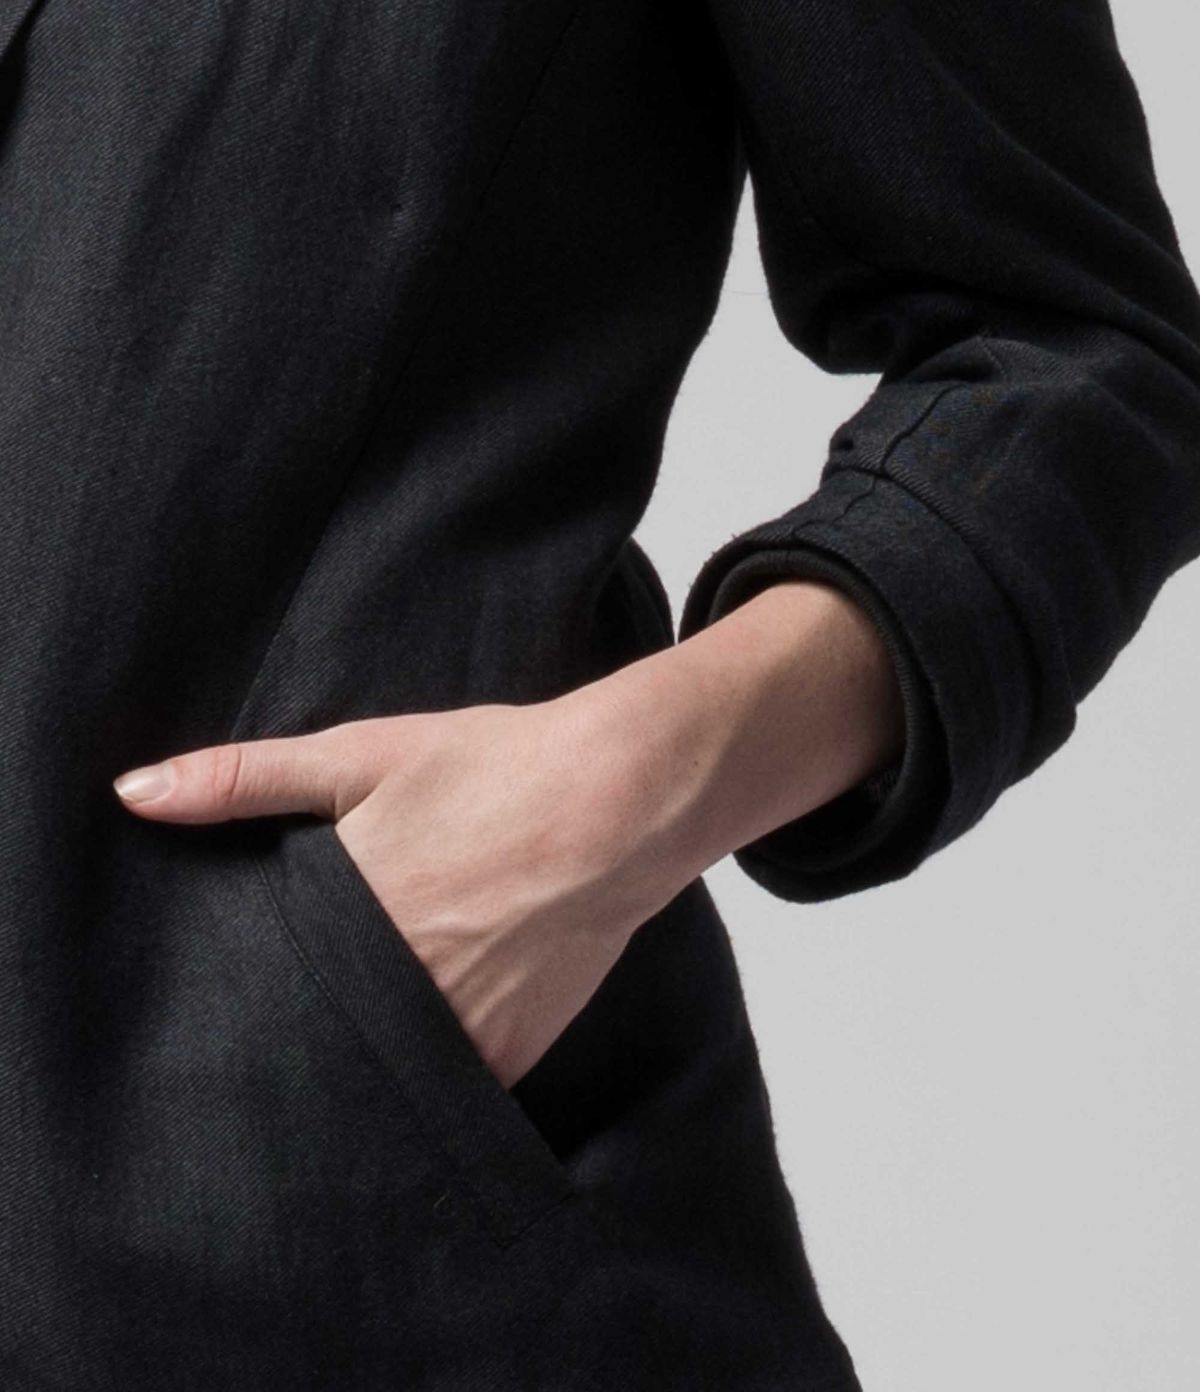 A close up of a woman's hand in her blazer pocket